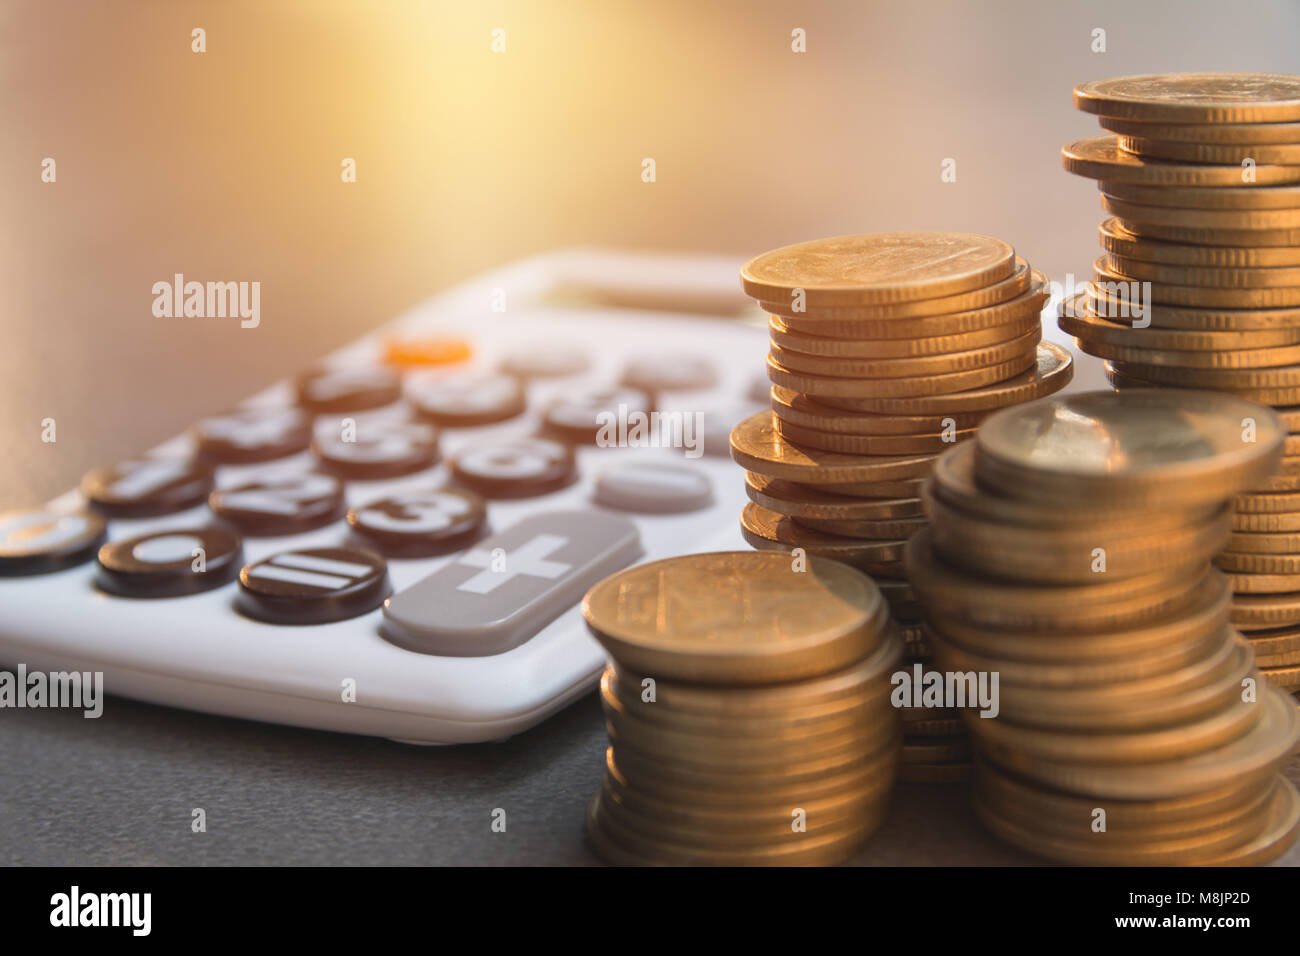 Saving money concept with money coin stack growing and calculator for business and accounting concept. - Stock Image